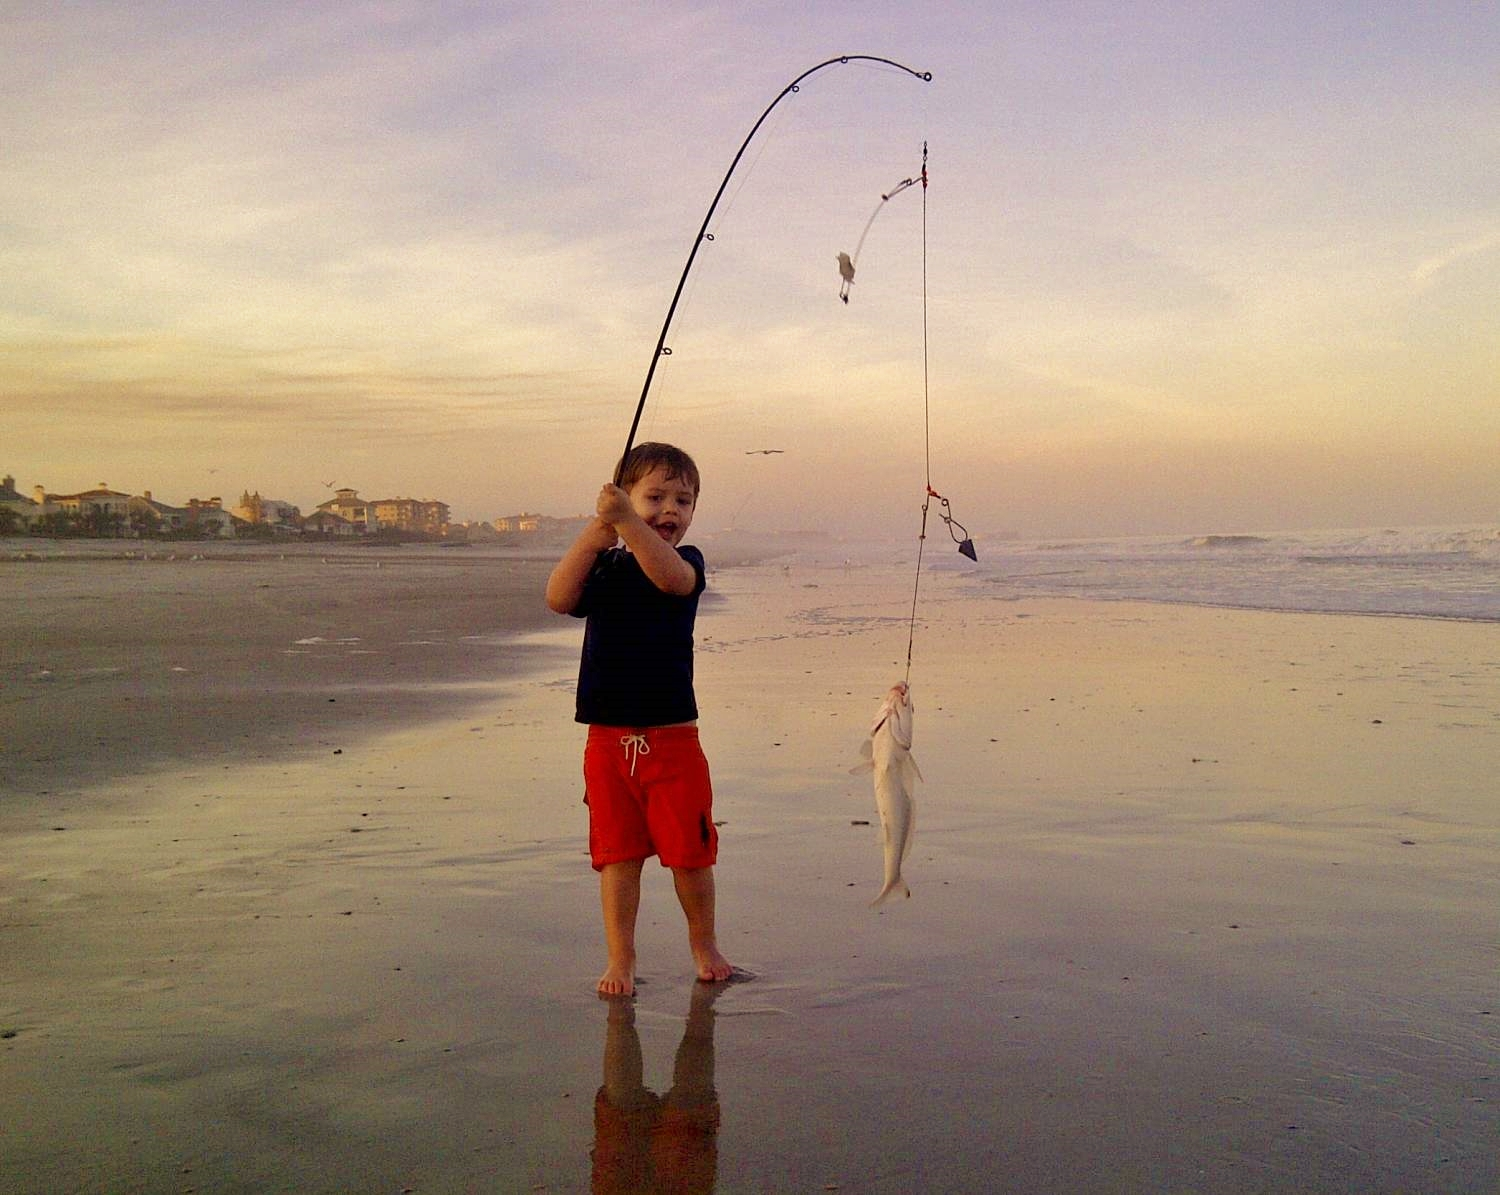 Amelia Island Beach Fishing by Terry Lacoss